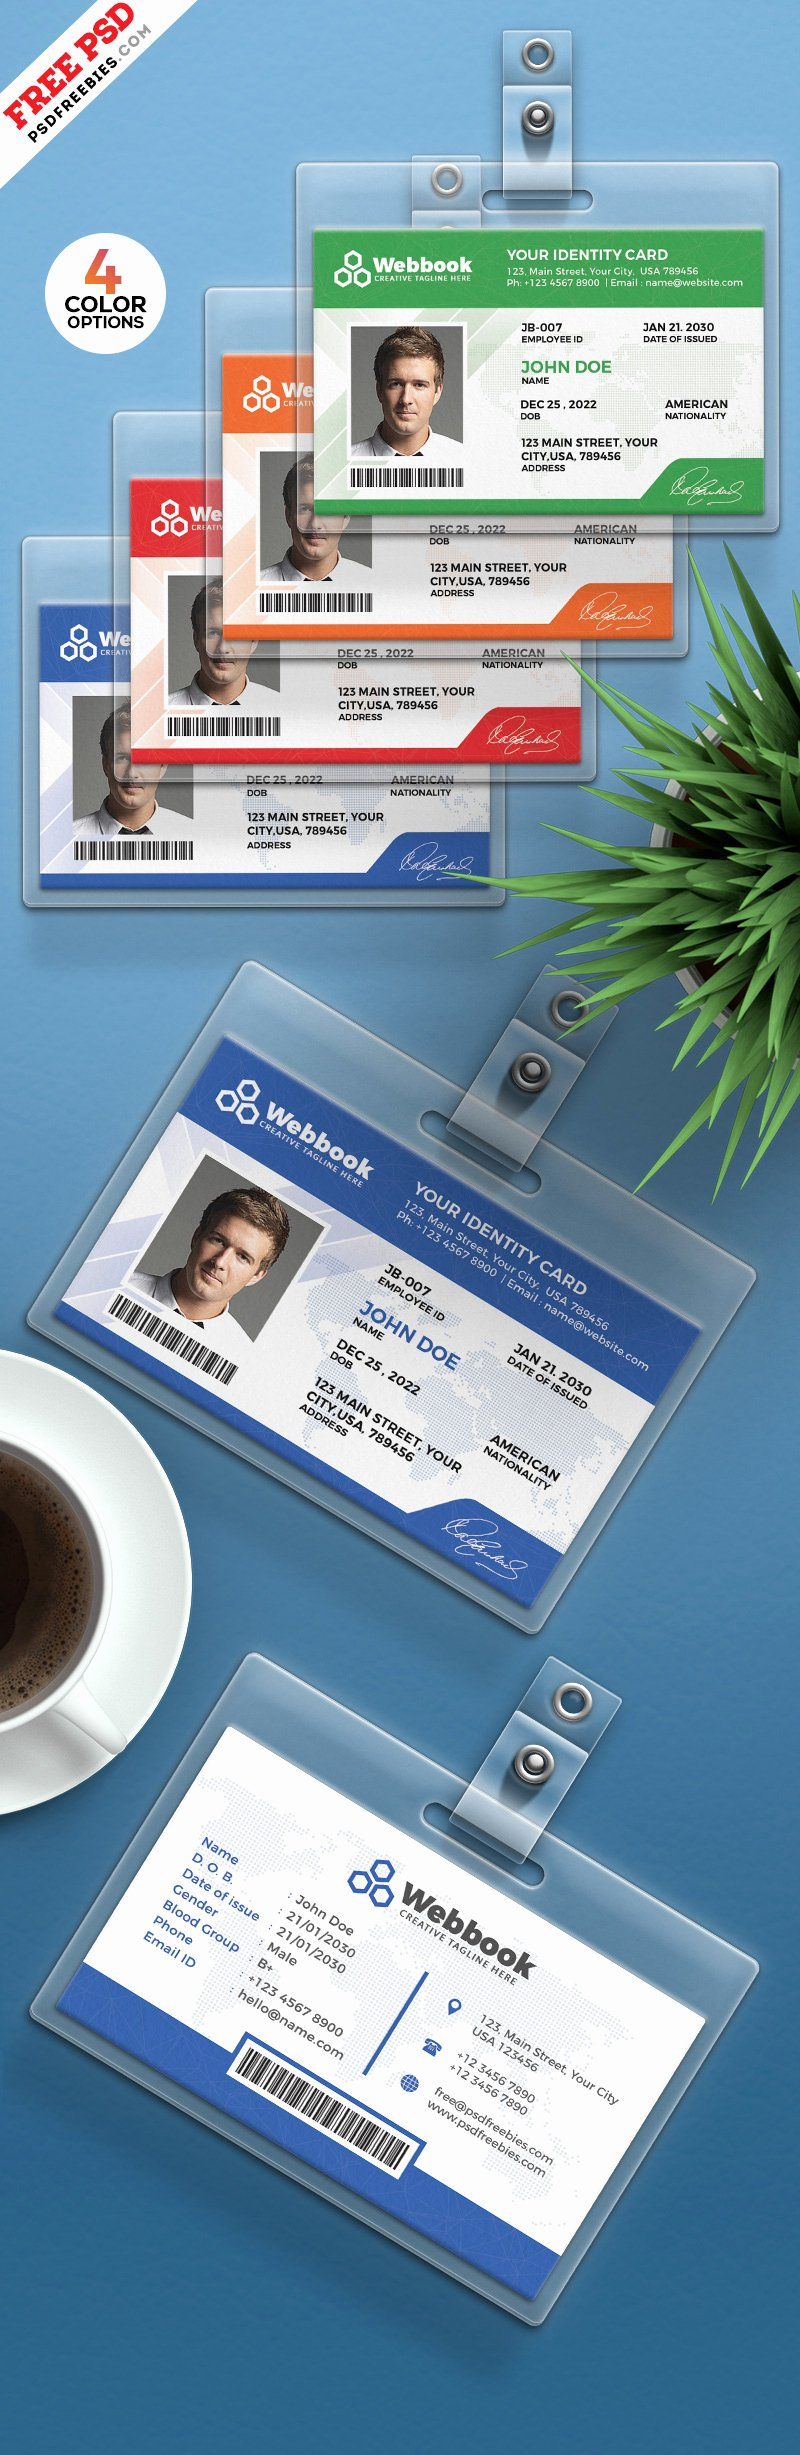 Free Id Card Template Fresh Free Id Card Template Psd Set